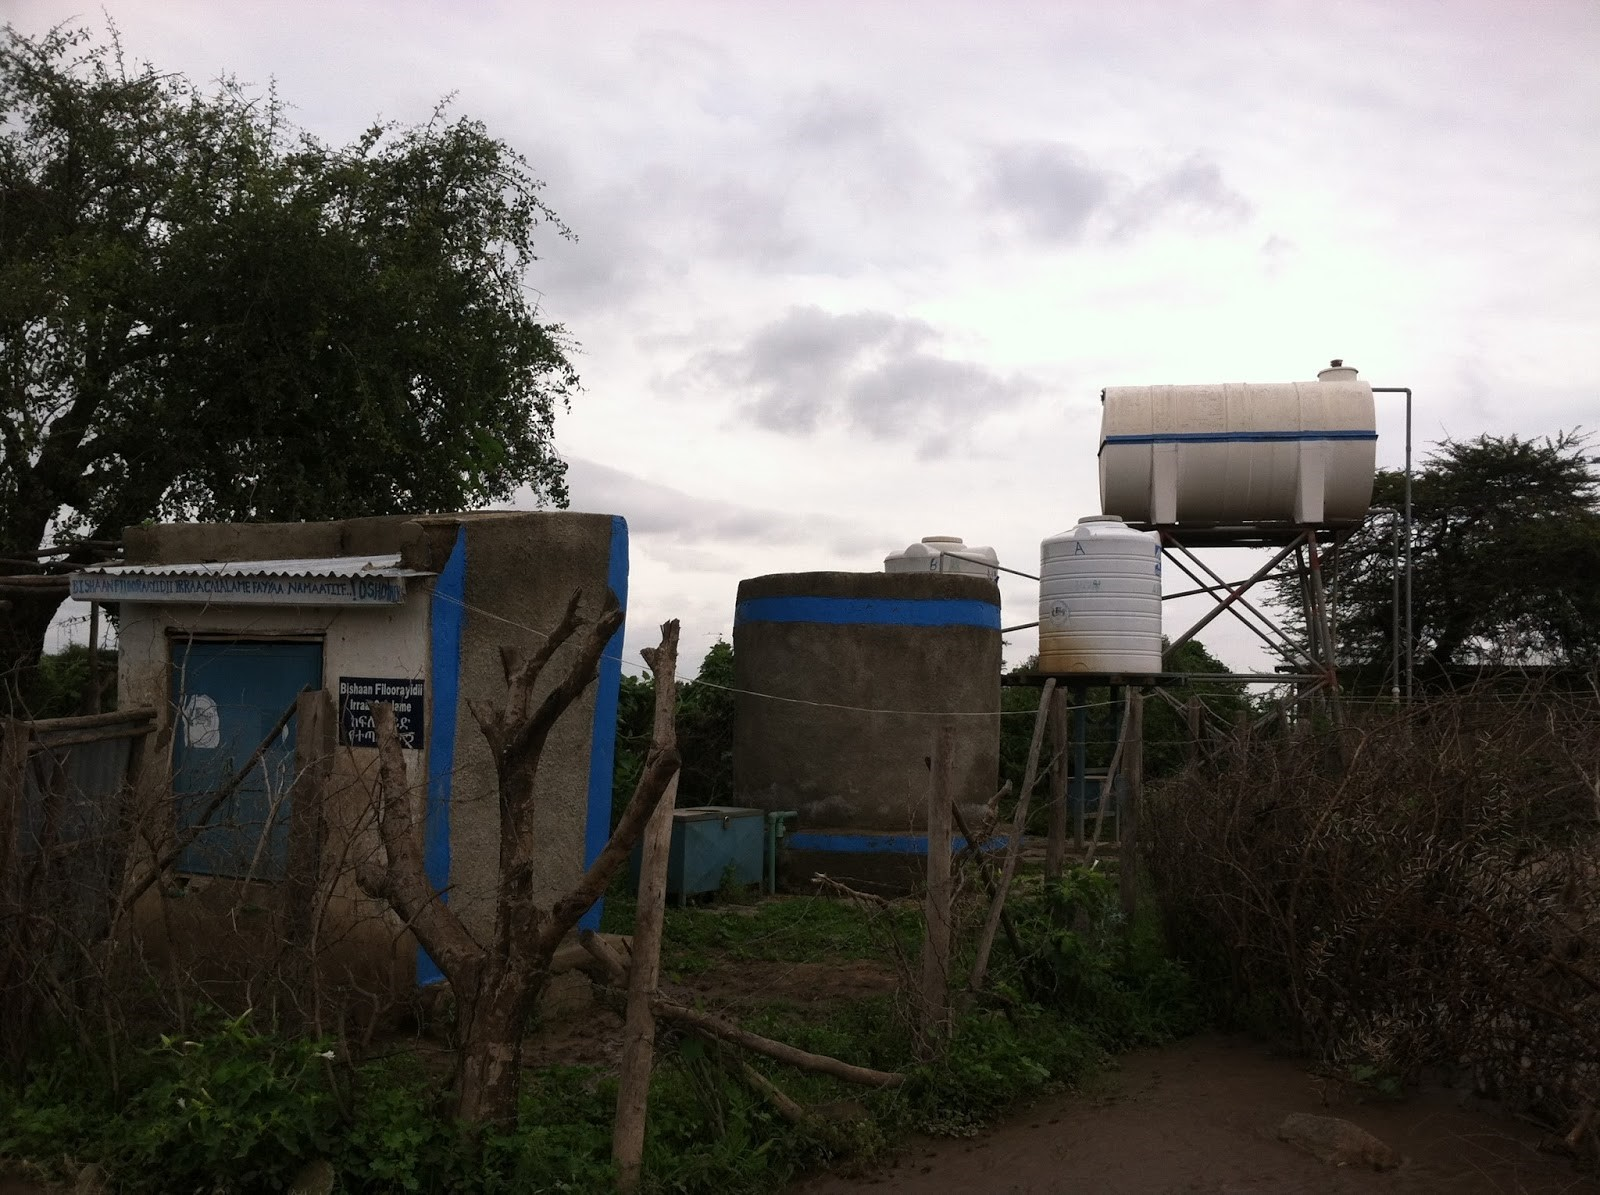 Fluoride filter system in Ethiopia. Source: OSHO (2014)